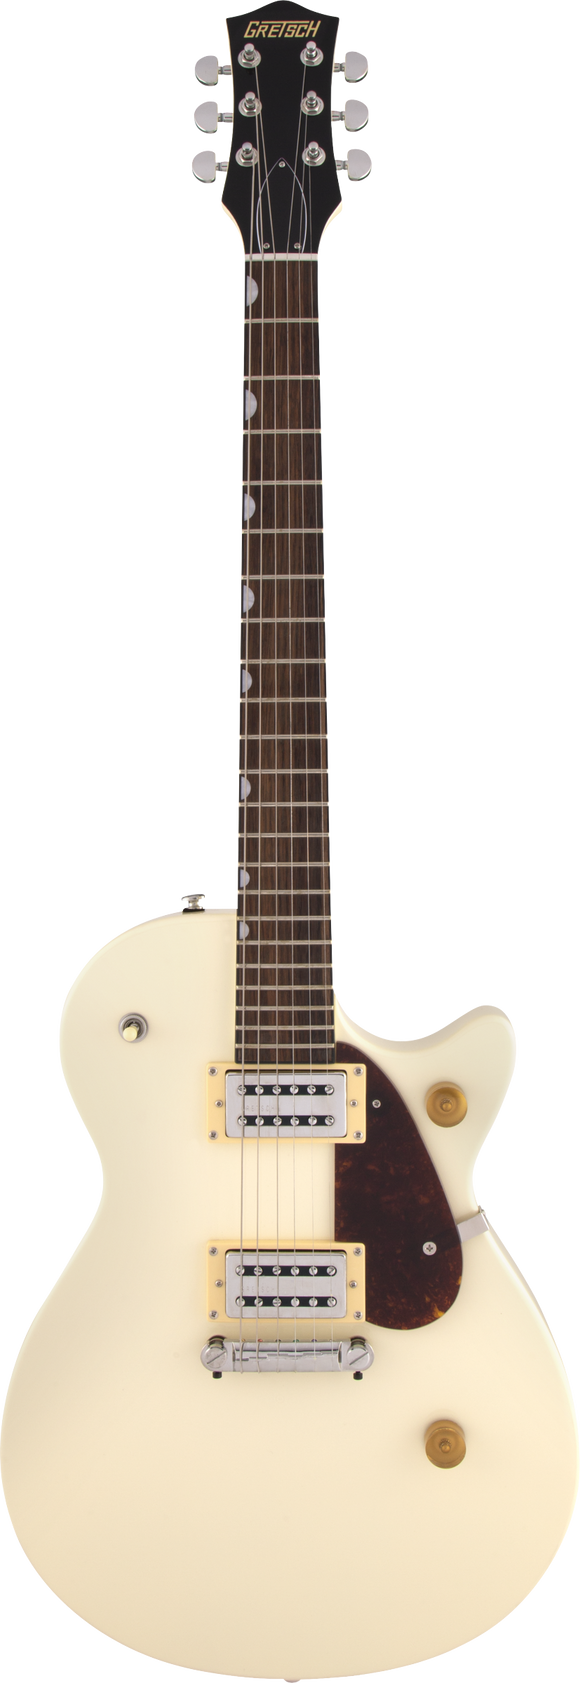 Gretsch G2210 Streamliner Junior Jet Club Vintage White